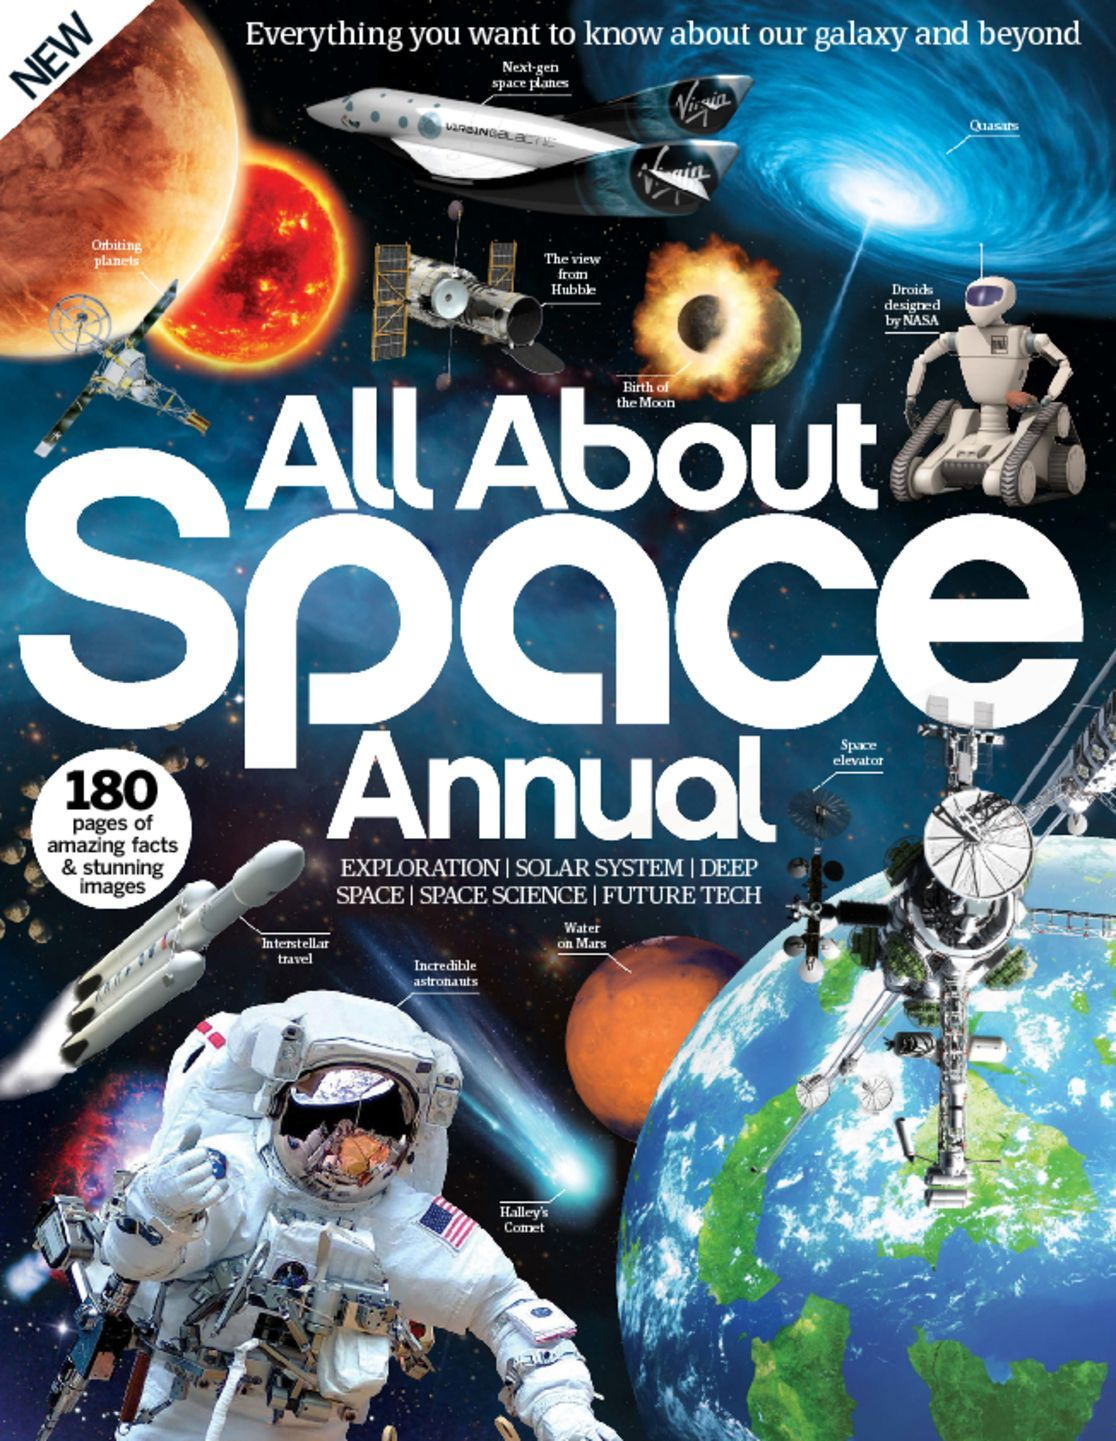 All About Space Annual Digital